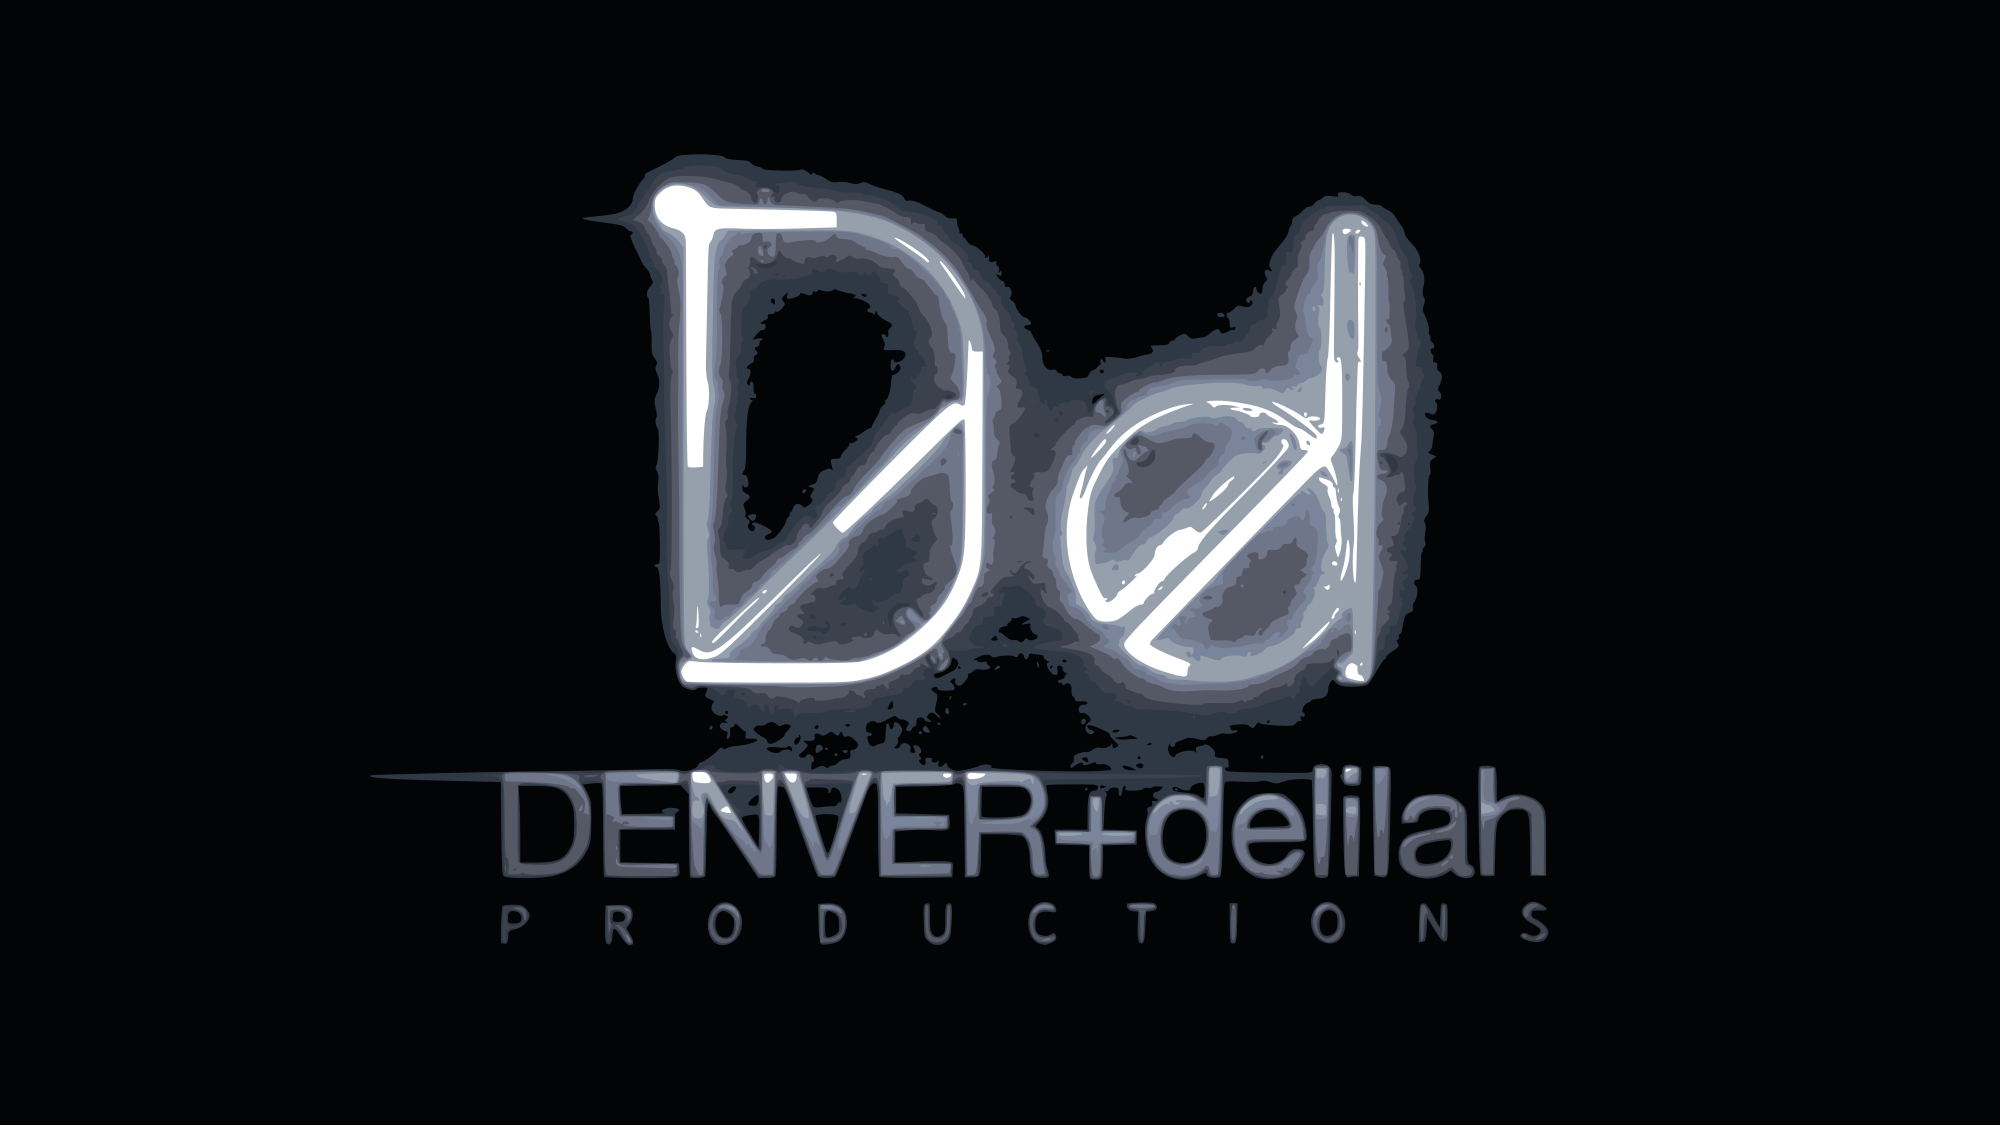 Denver and Delilah Productions